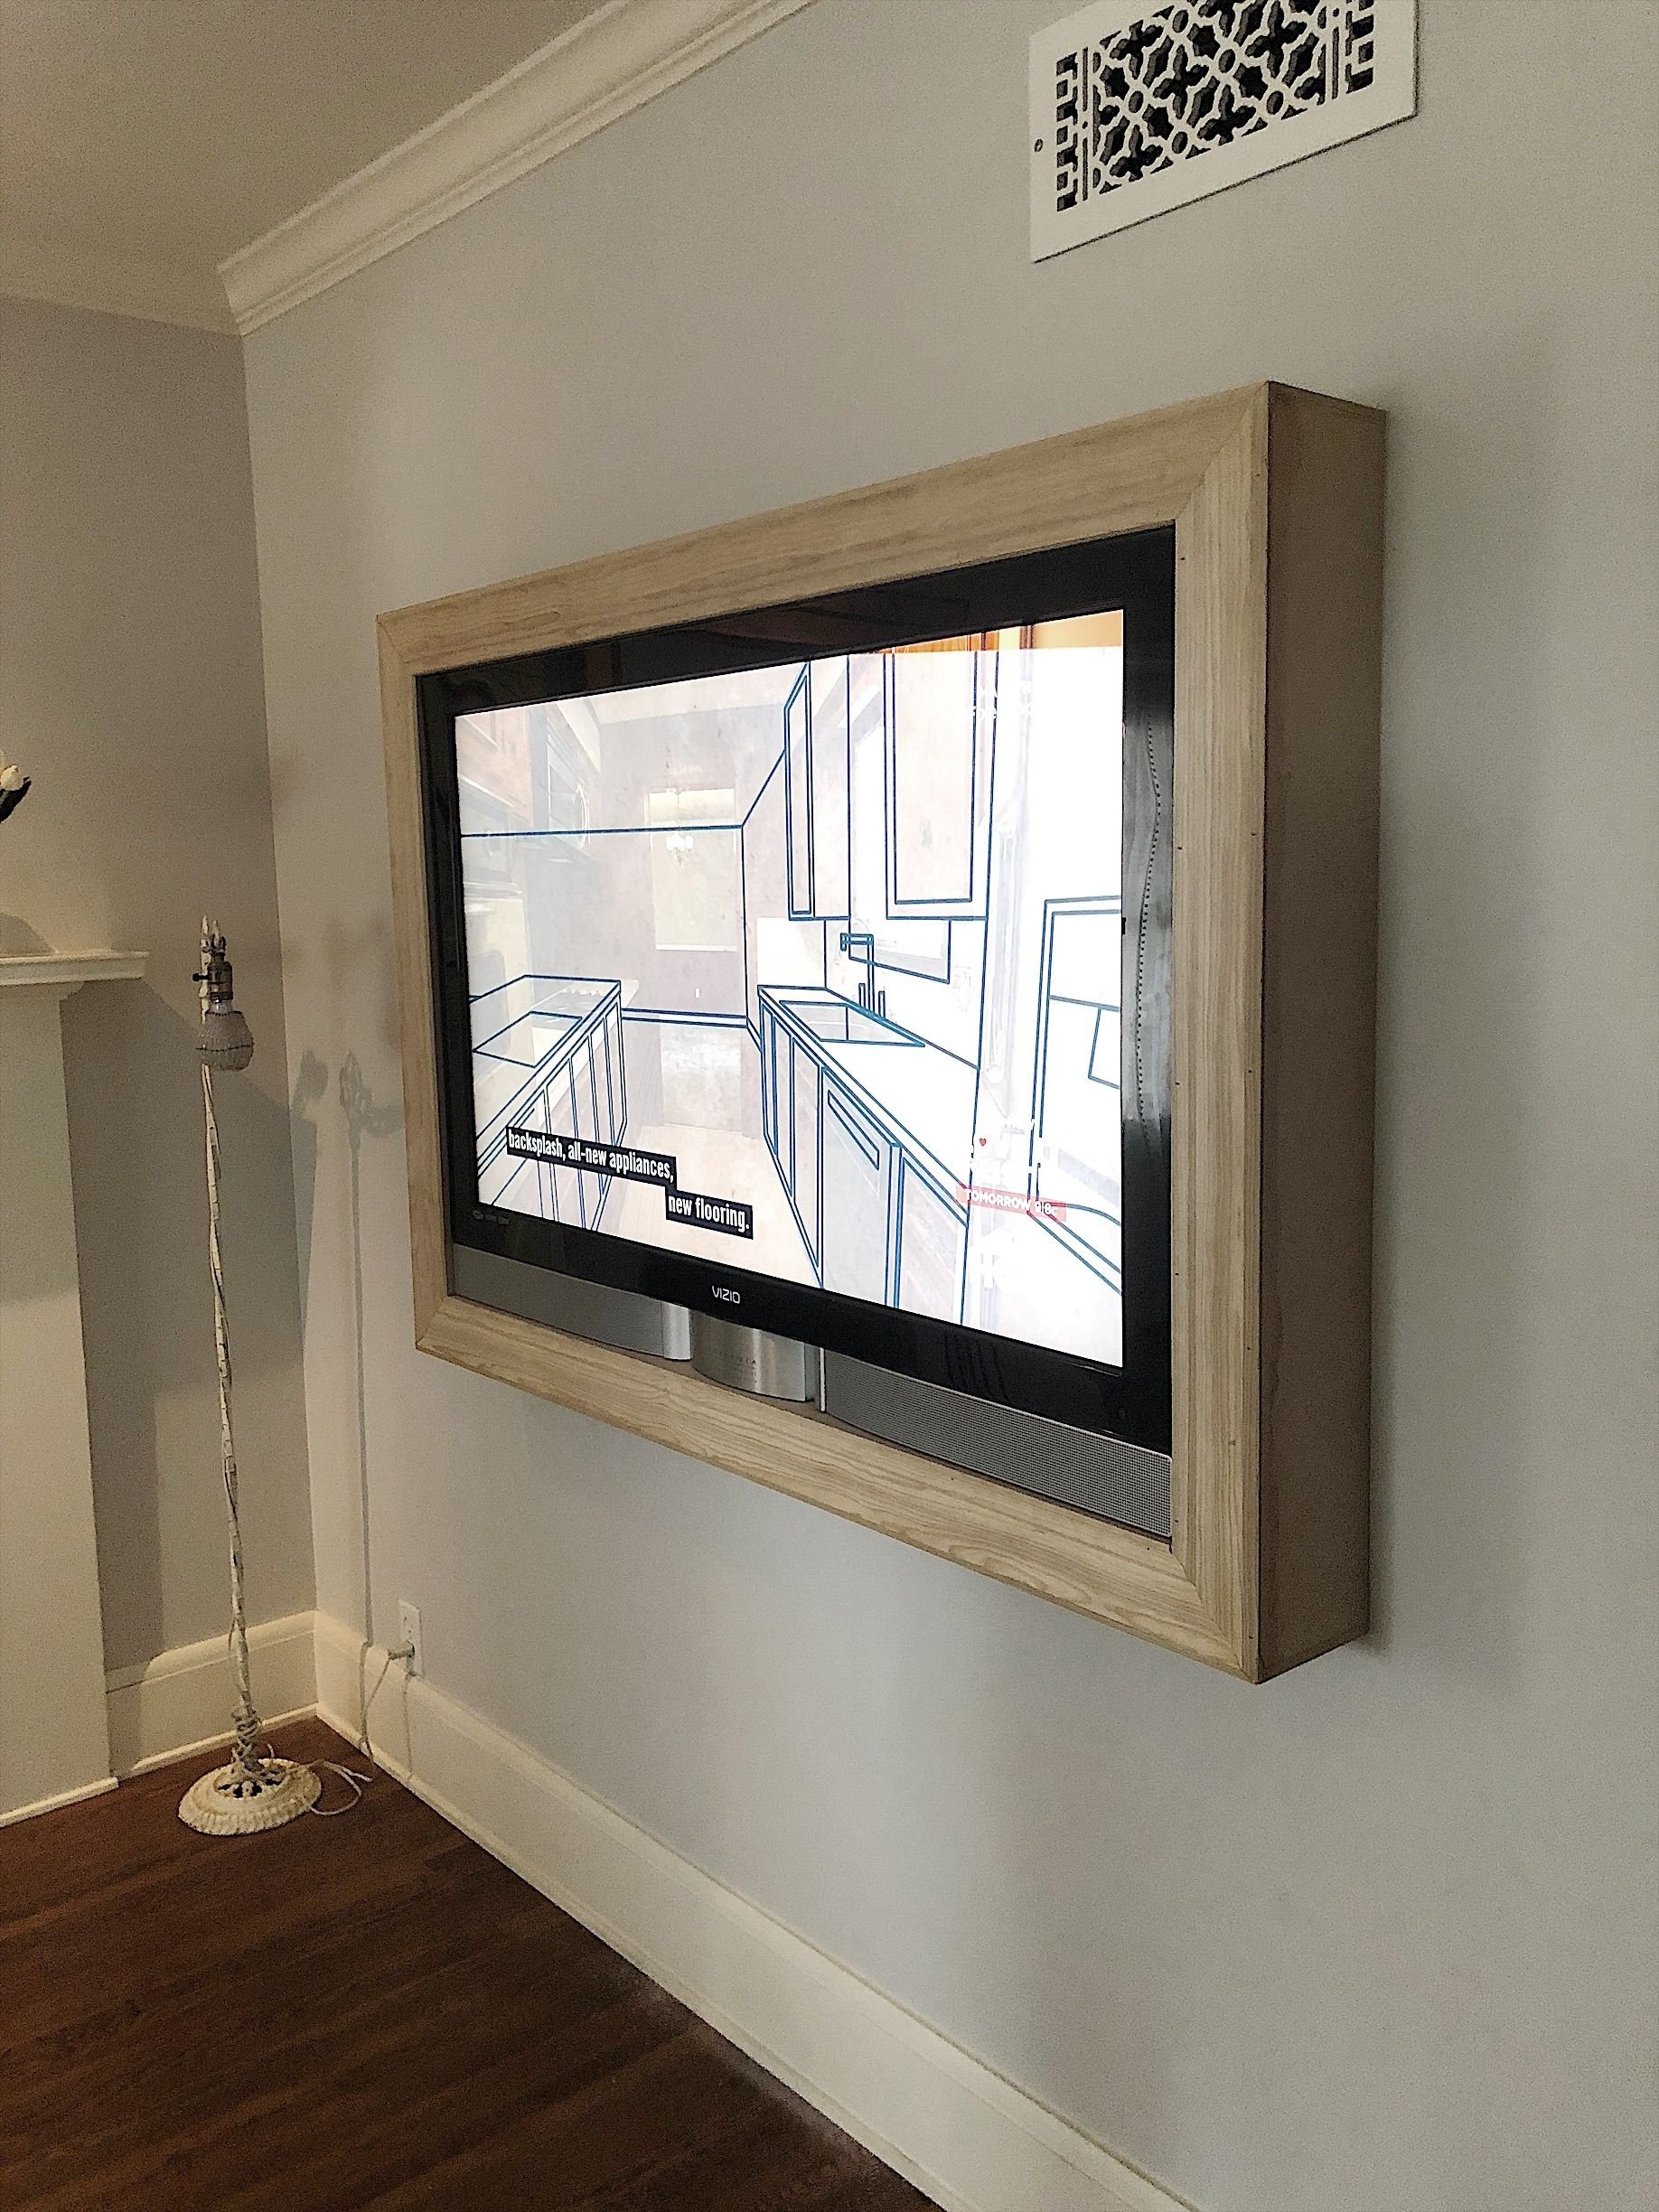 Five Steps To Build A Frame For A Wall Mounted Tv Mounted Tv Ideas Living Rooms Wall Mounted Tv Bedroom Tv Wall